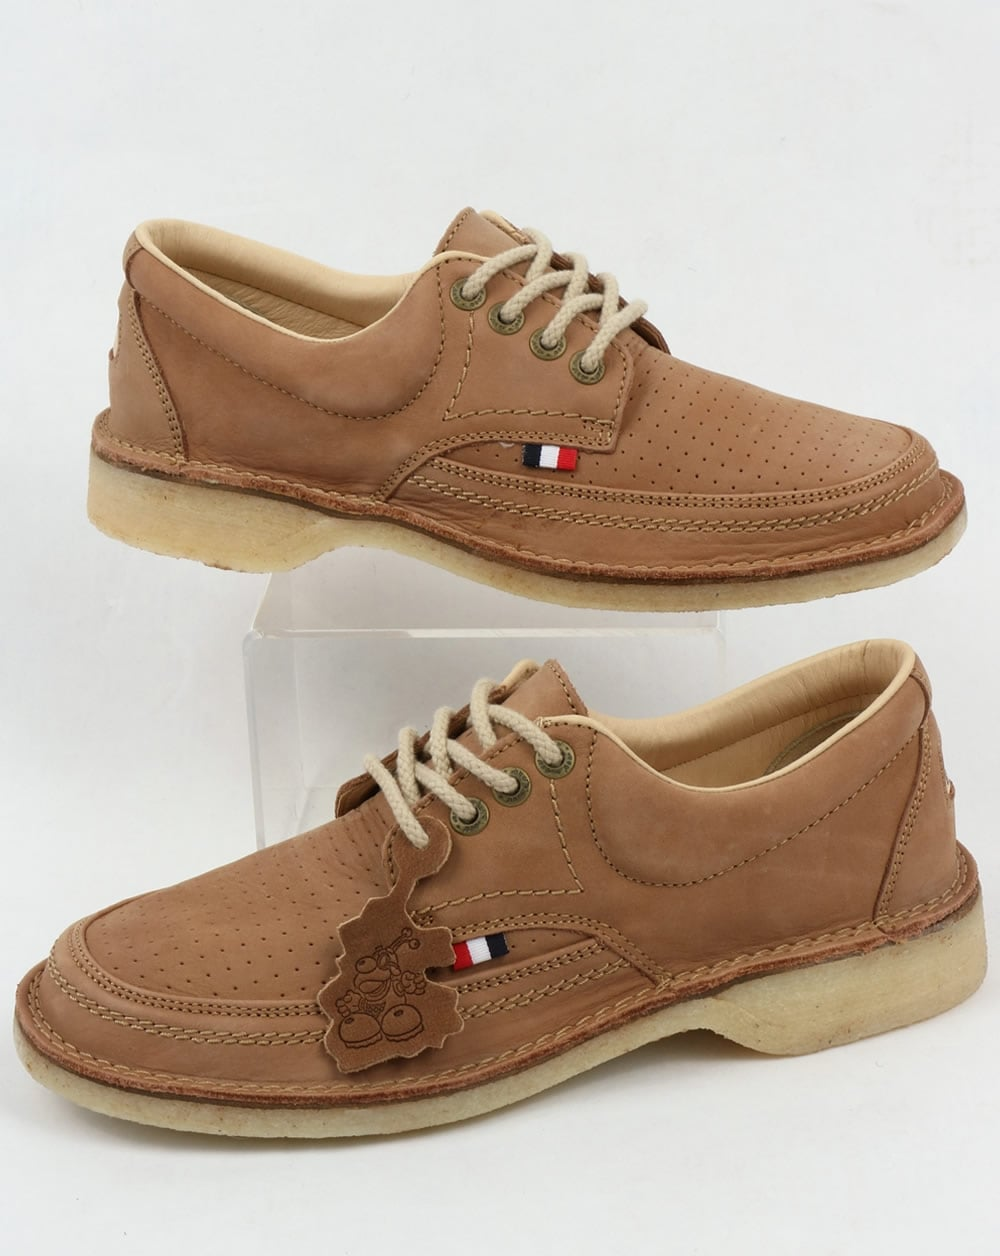 pod-gallagher-shoe-camel-p9754-61478_ima